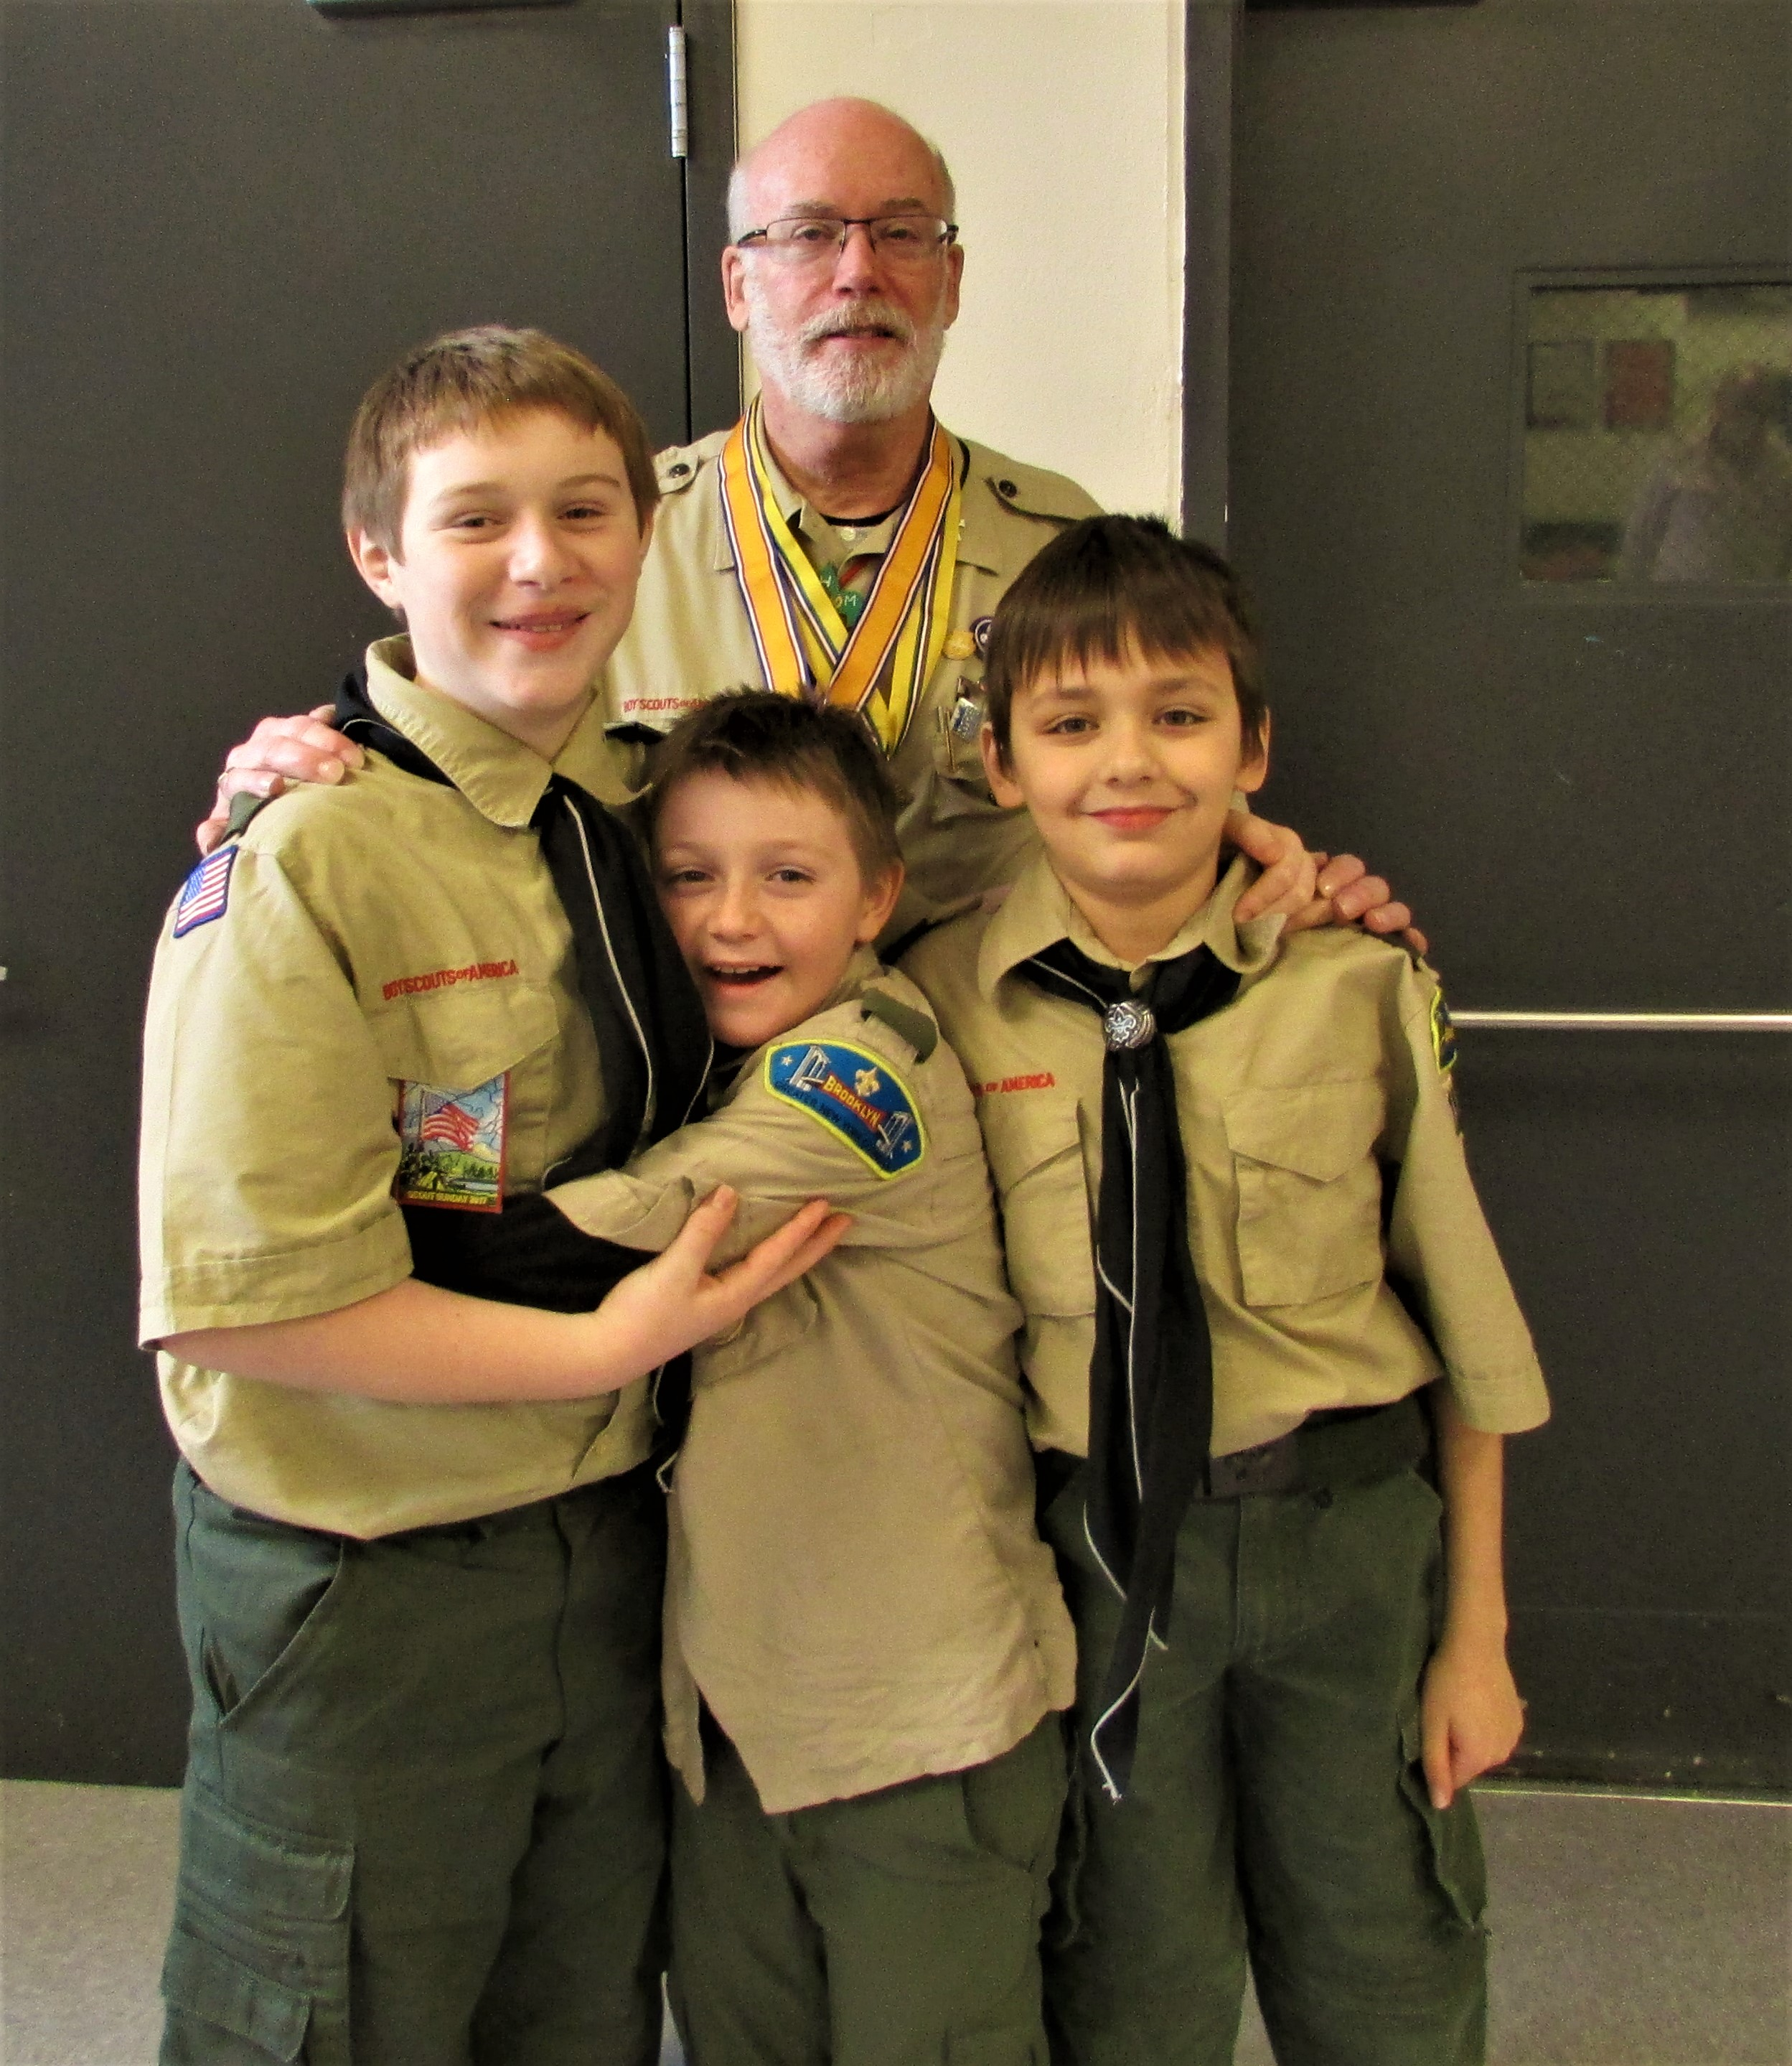 Deacon Jim Noble with some Troop 187 Scouts